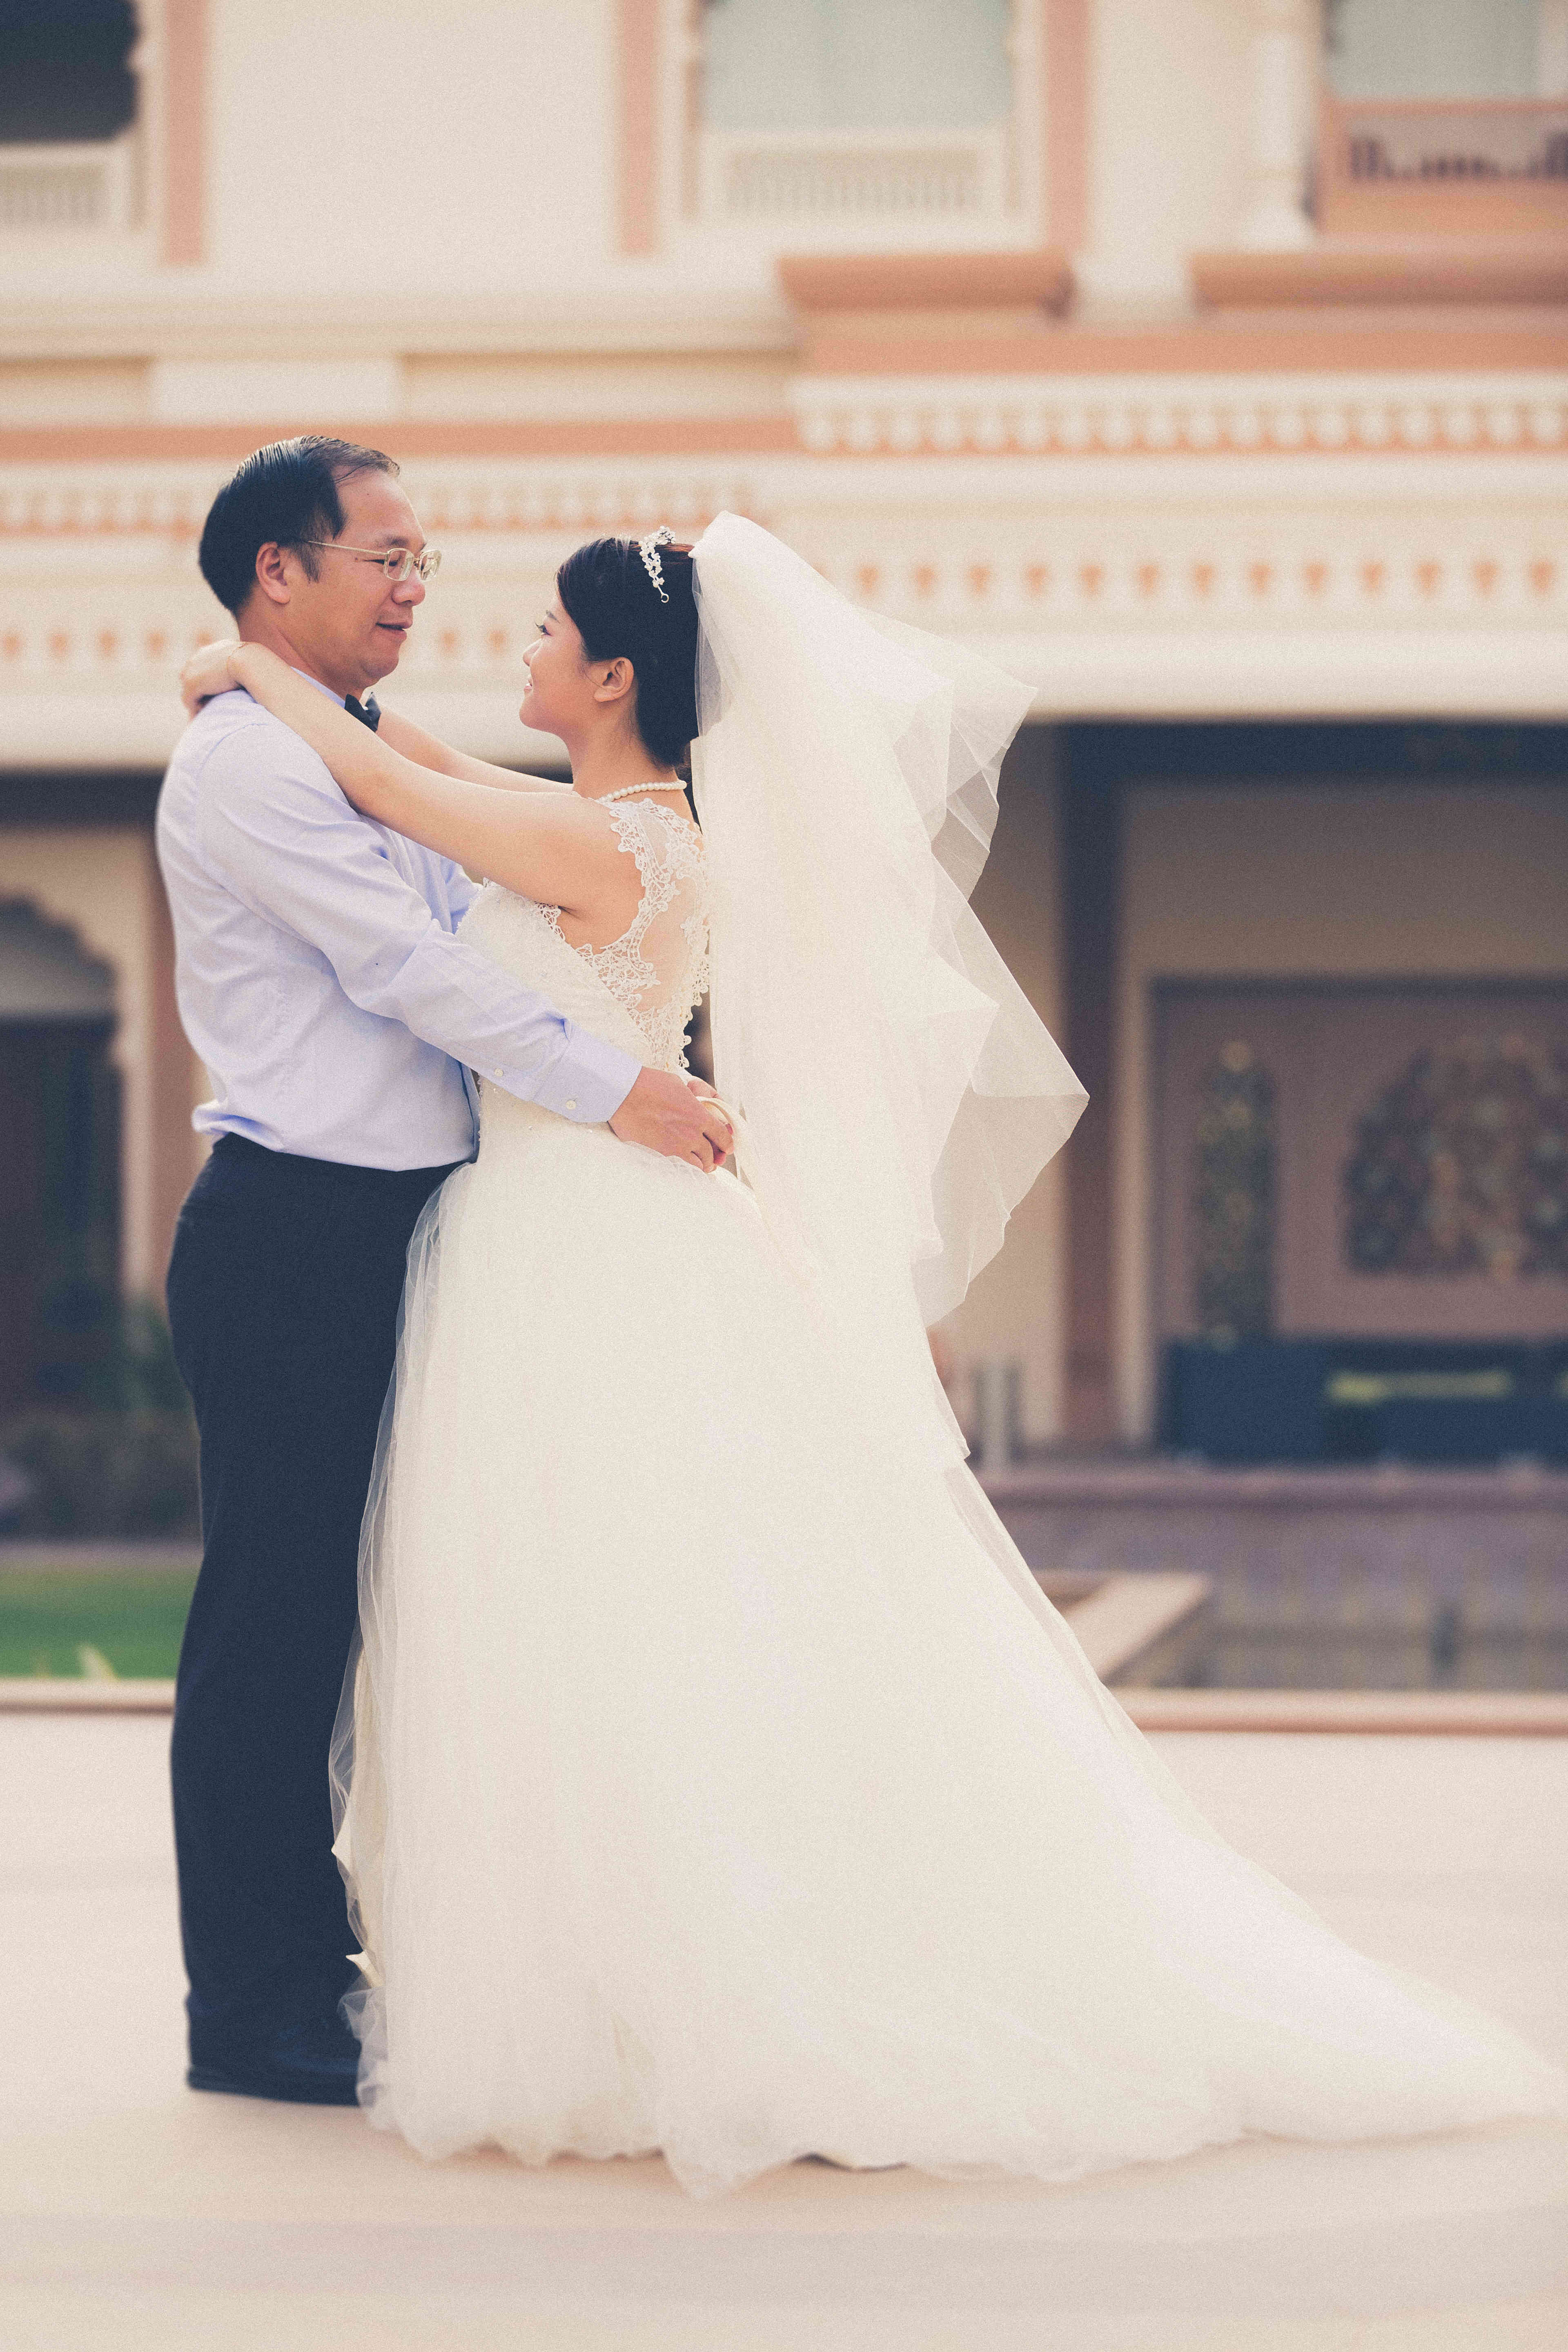 ling & zhang!:our wedding chapter